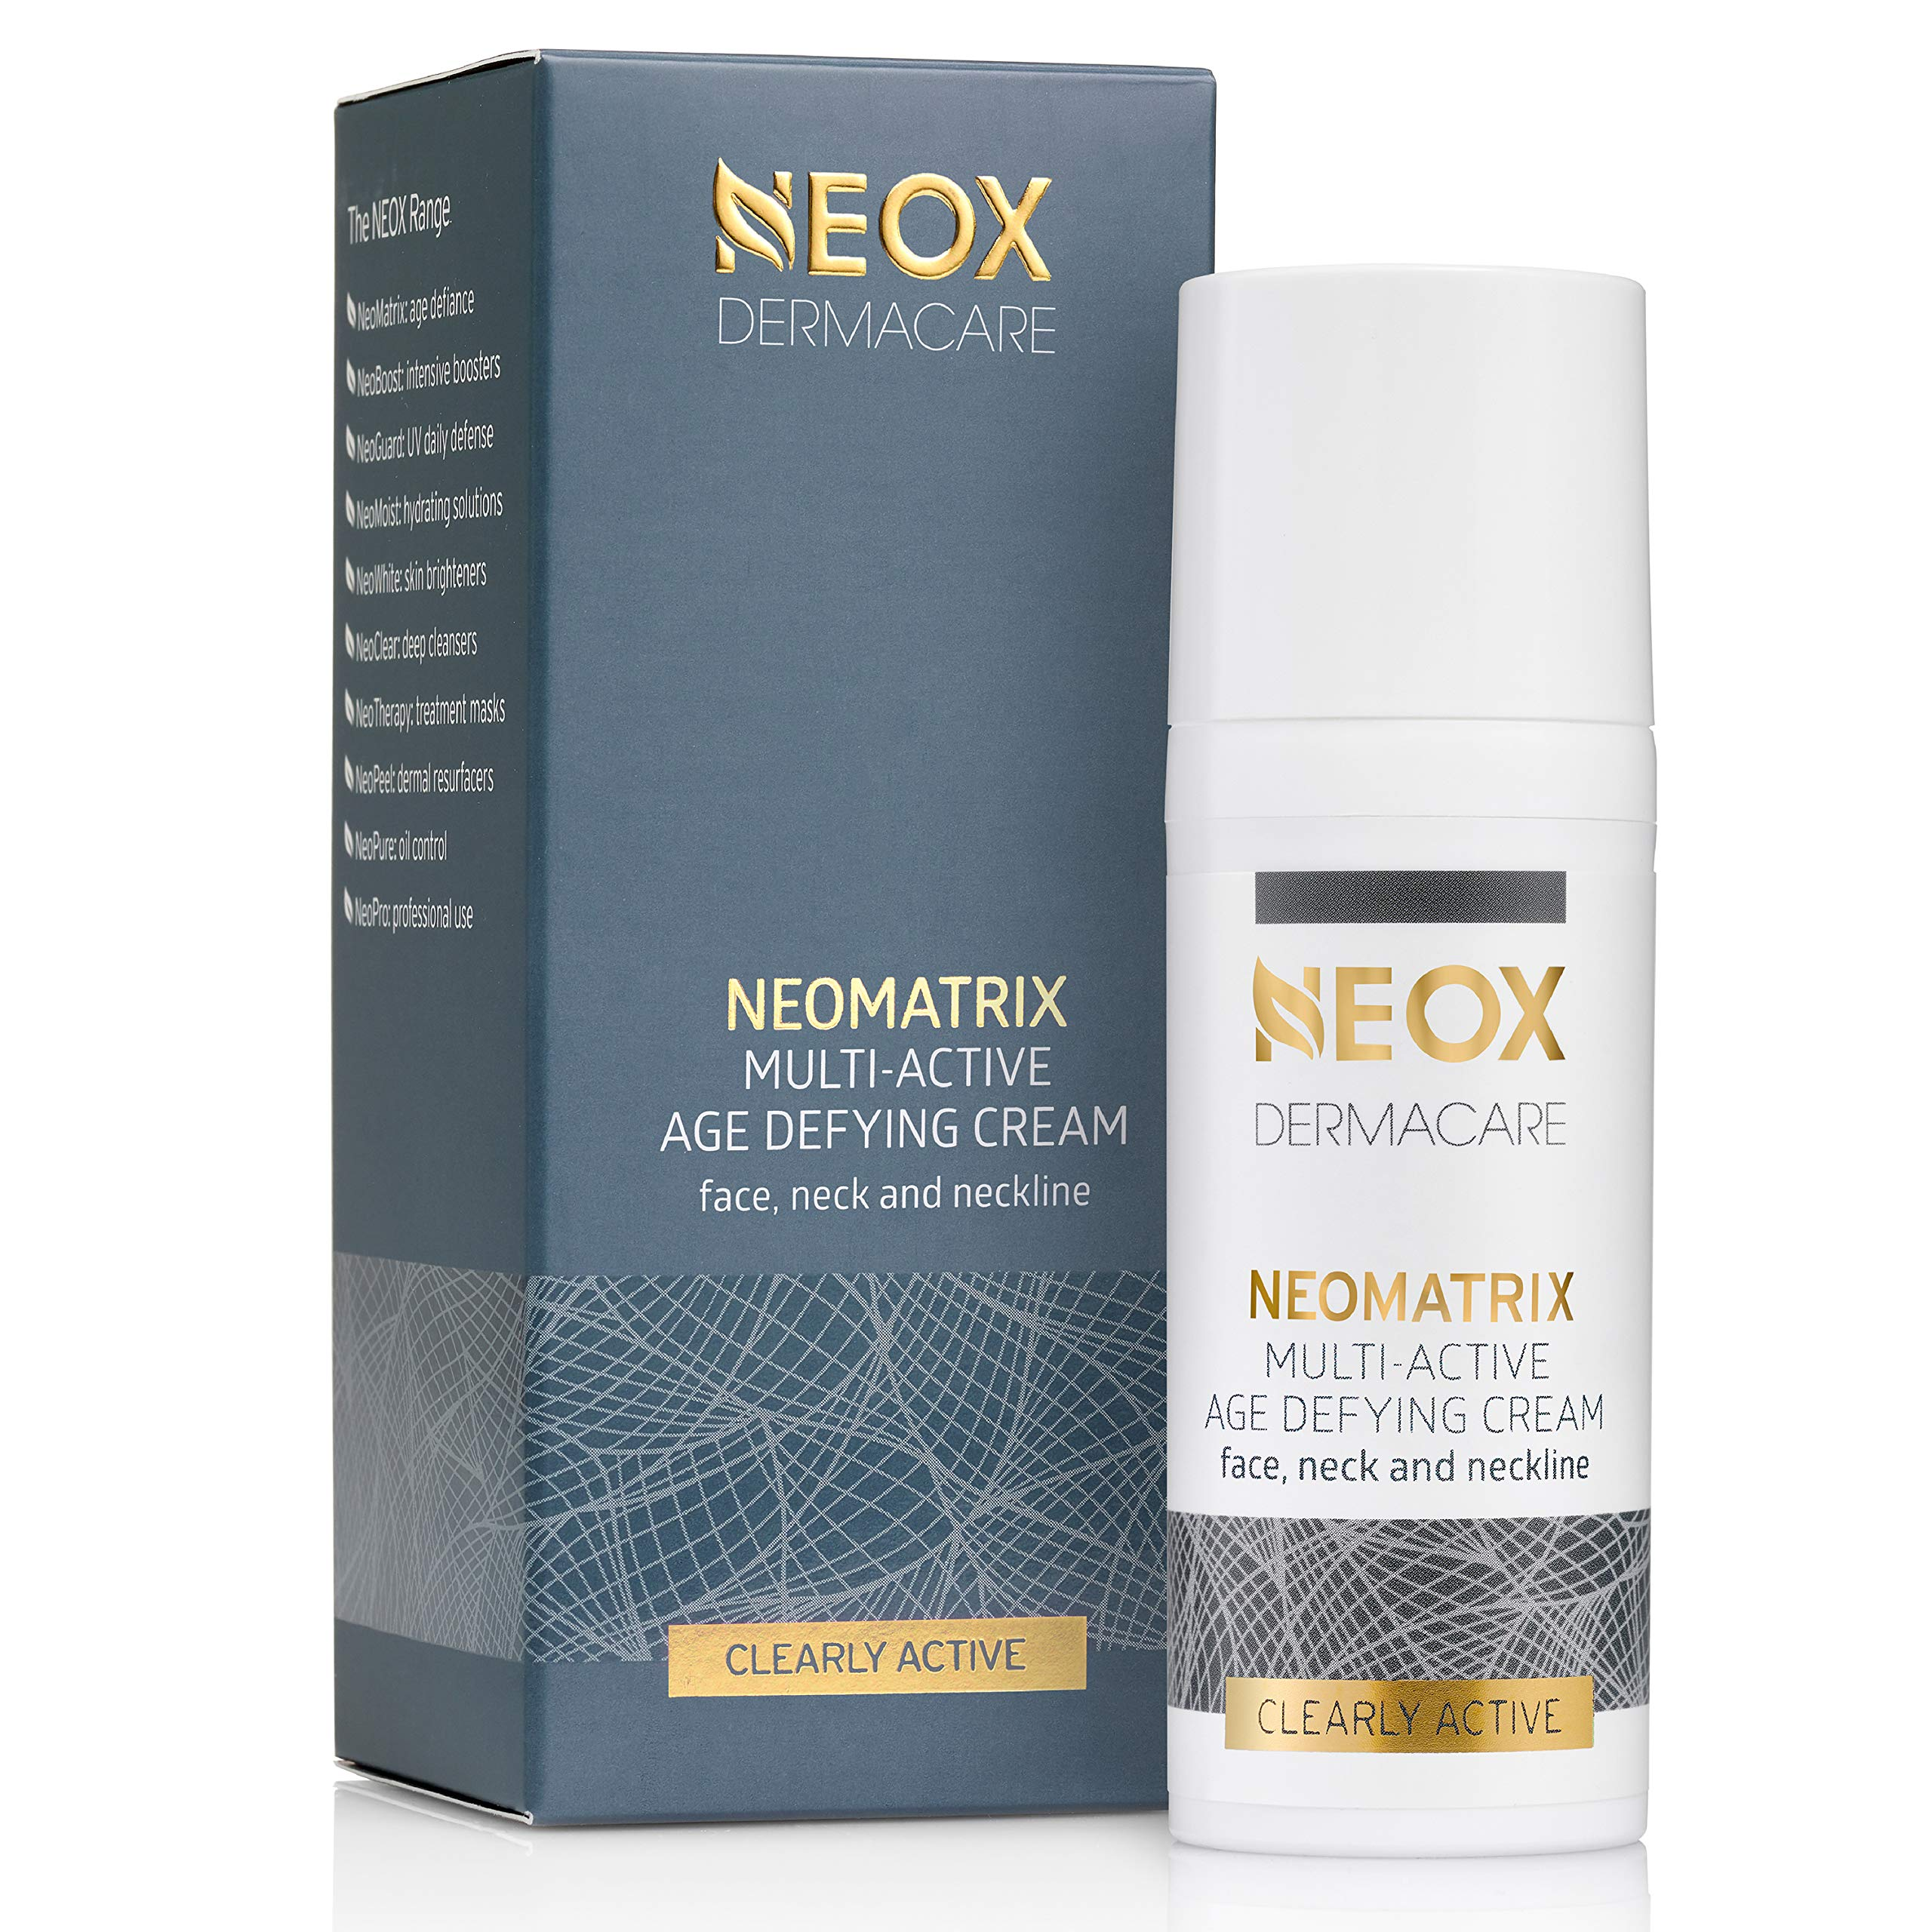 NeoMatrix Anti Wrinkle Cream Multi-Active Age Defying Cream by NEOX DERMACARE: 10 Treatments in One of Anti-Aging, Anti-Wrinkle, Firming, Lifting on Face, Neck or Neckline